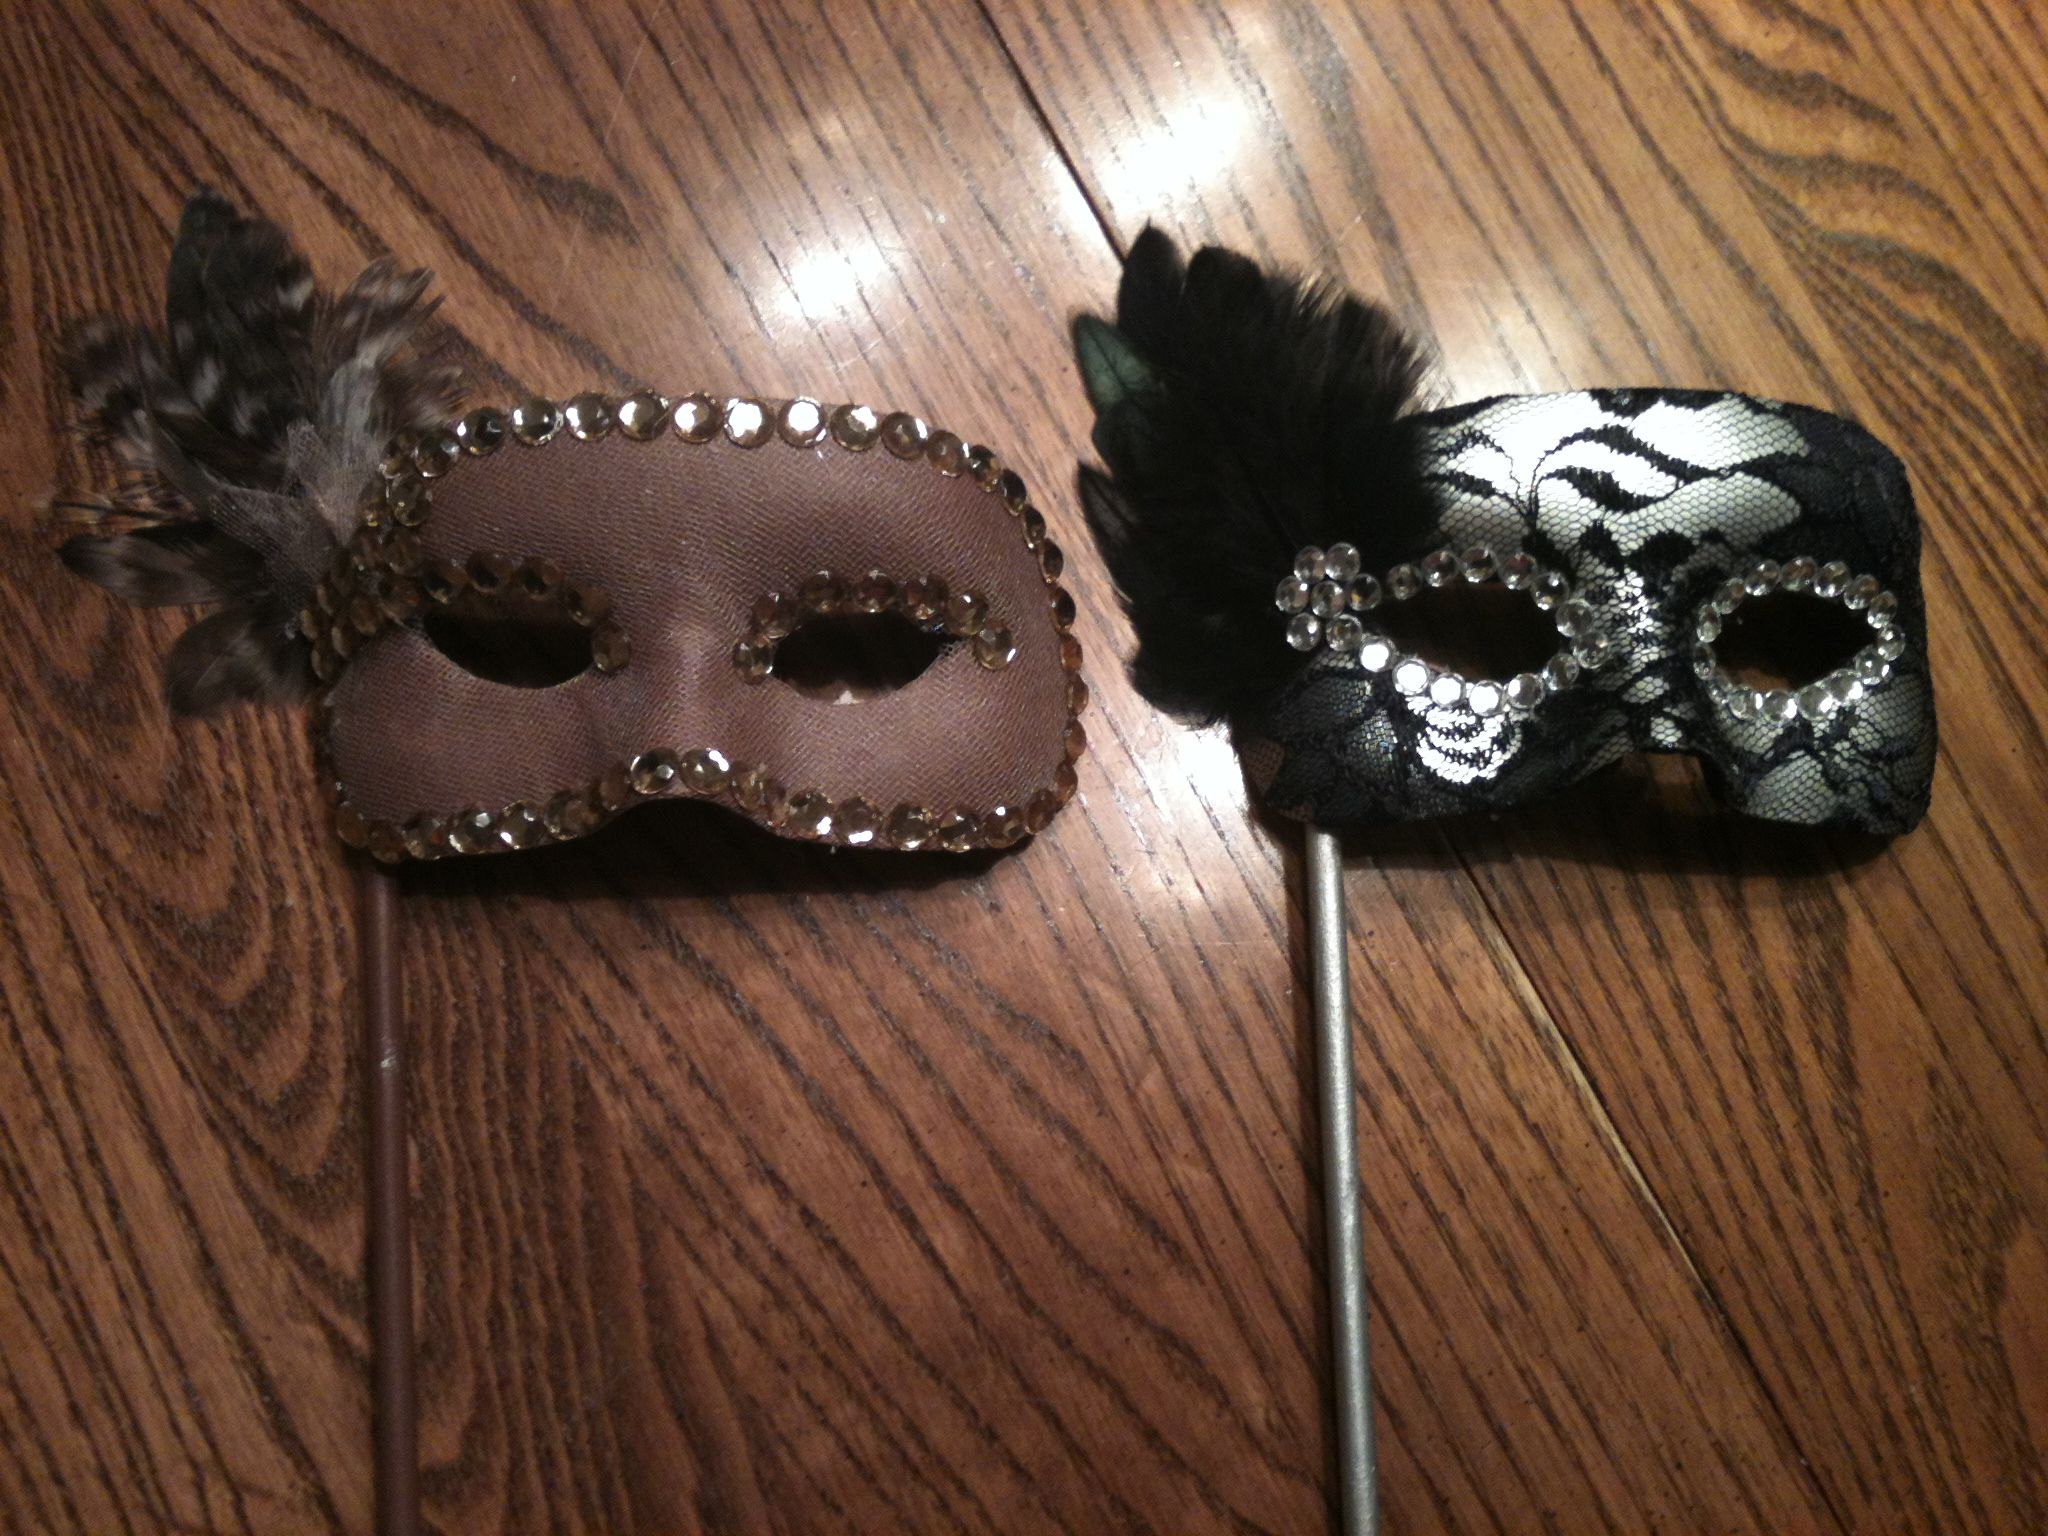 Plain Masks To Decorate Diy Masquerade Masks  My Style  Pinterest  Masquerade Masks